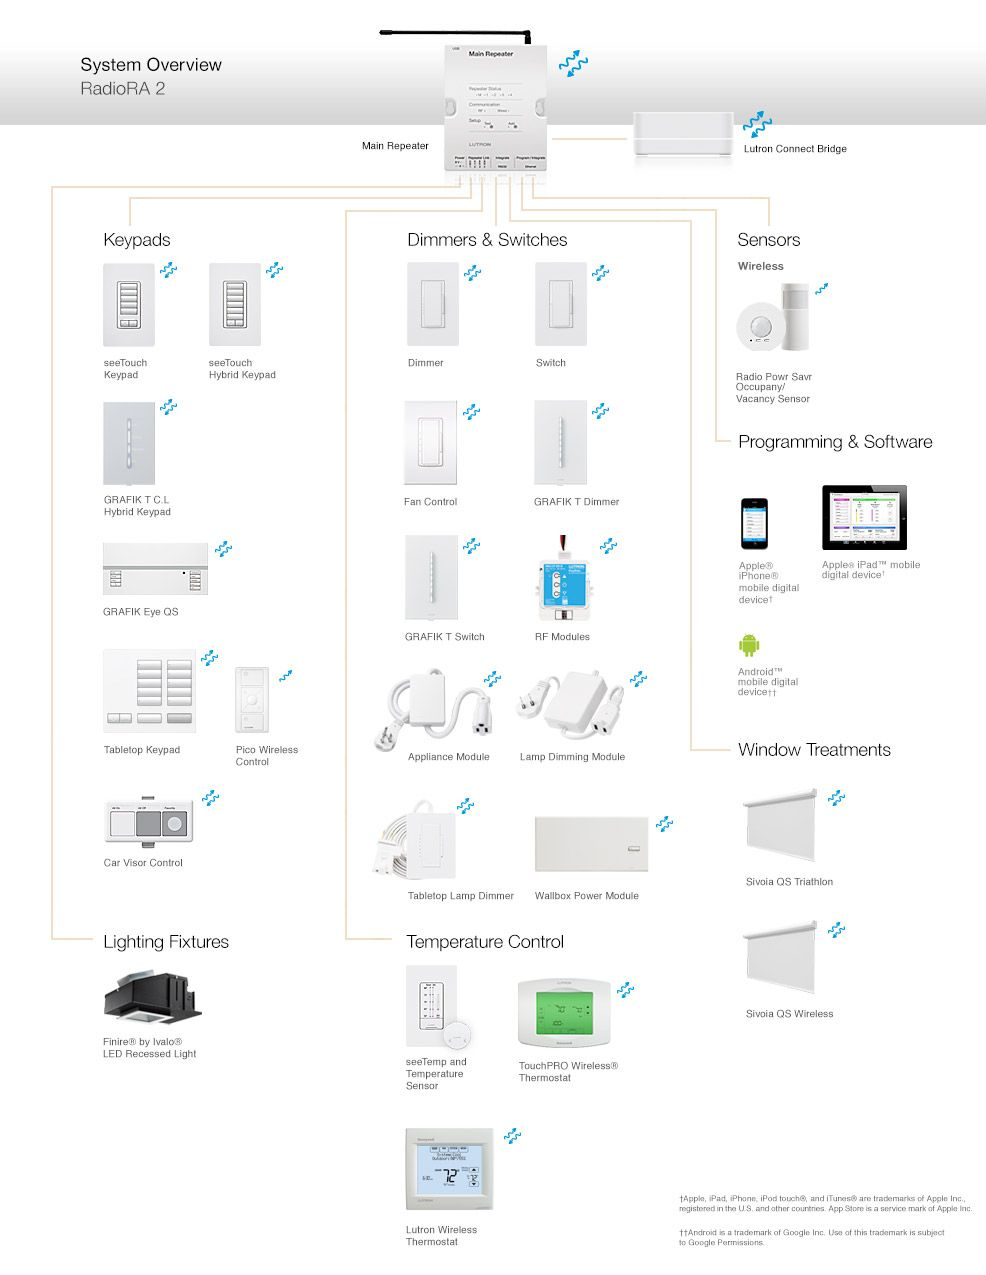 Lutron Radiora Wiring Diagram Just Another Data Scl Iv 153ph Dimmer Switch 2 Components And Compatible Products Home Maestro